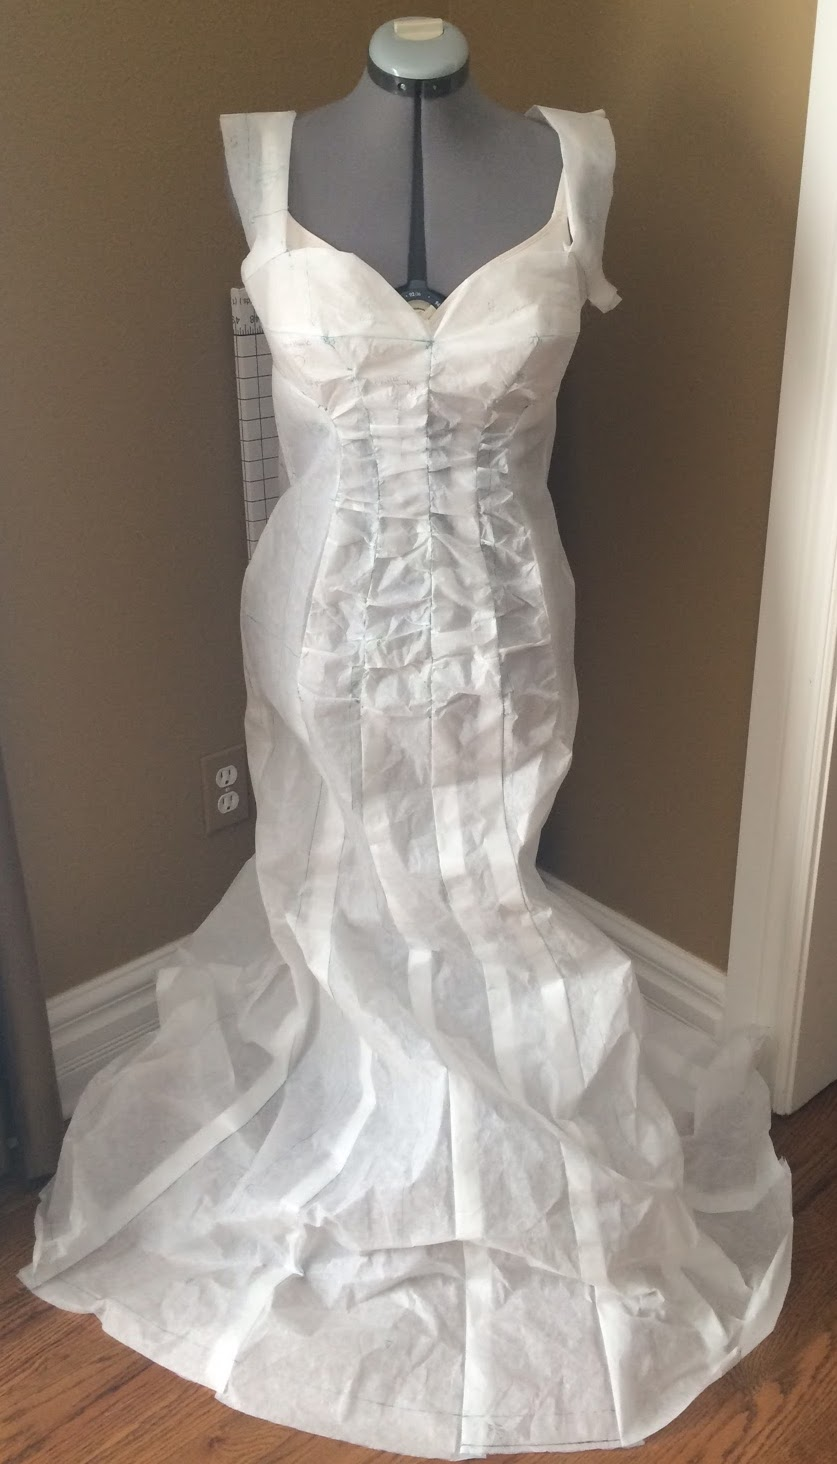 Madame Sew-and-Sew: Experiments in Sewing - The Paper Gown